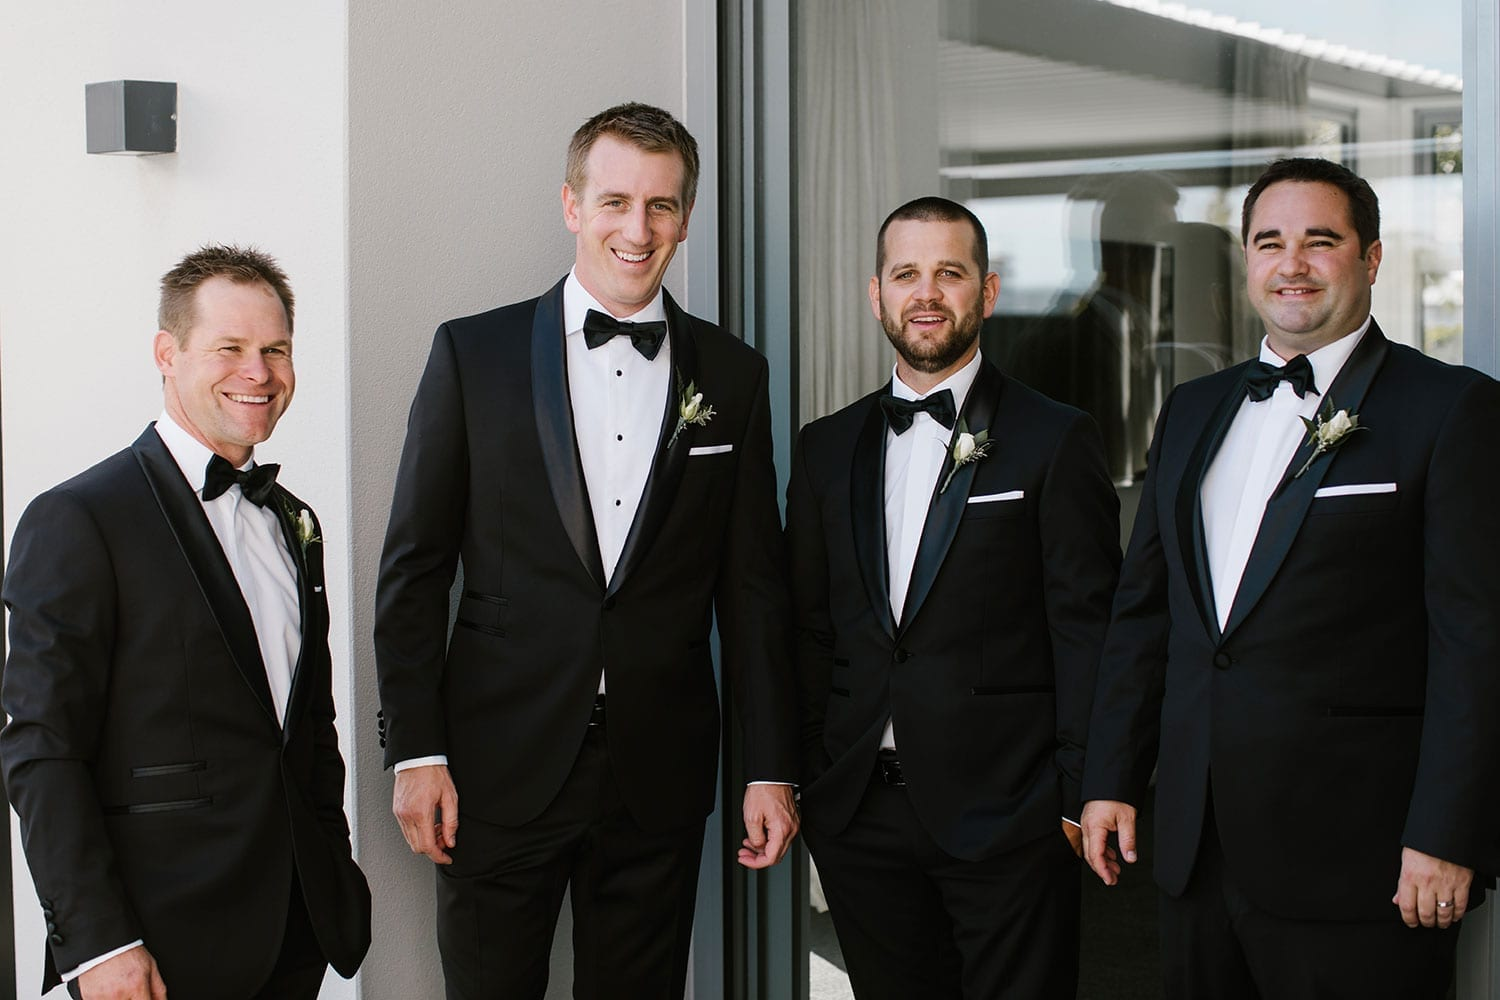 Vinka Design Features Real Weddings - Grooms party - Sarah and Cam wedding